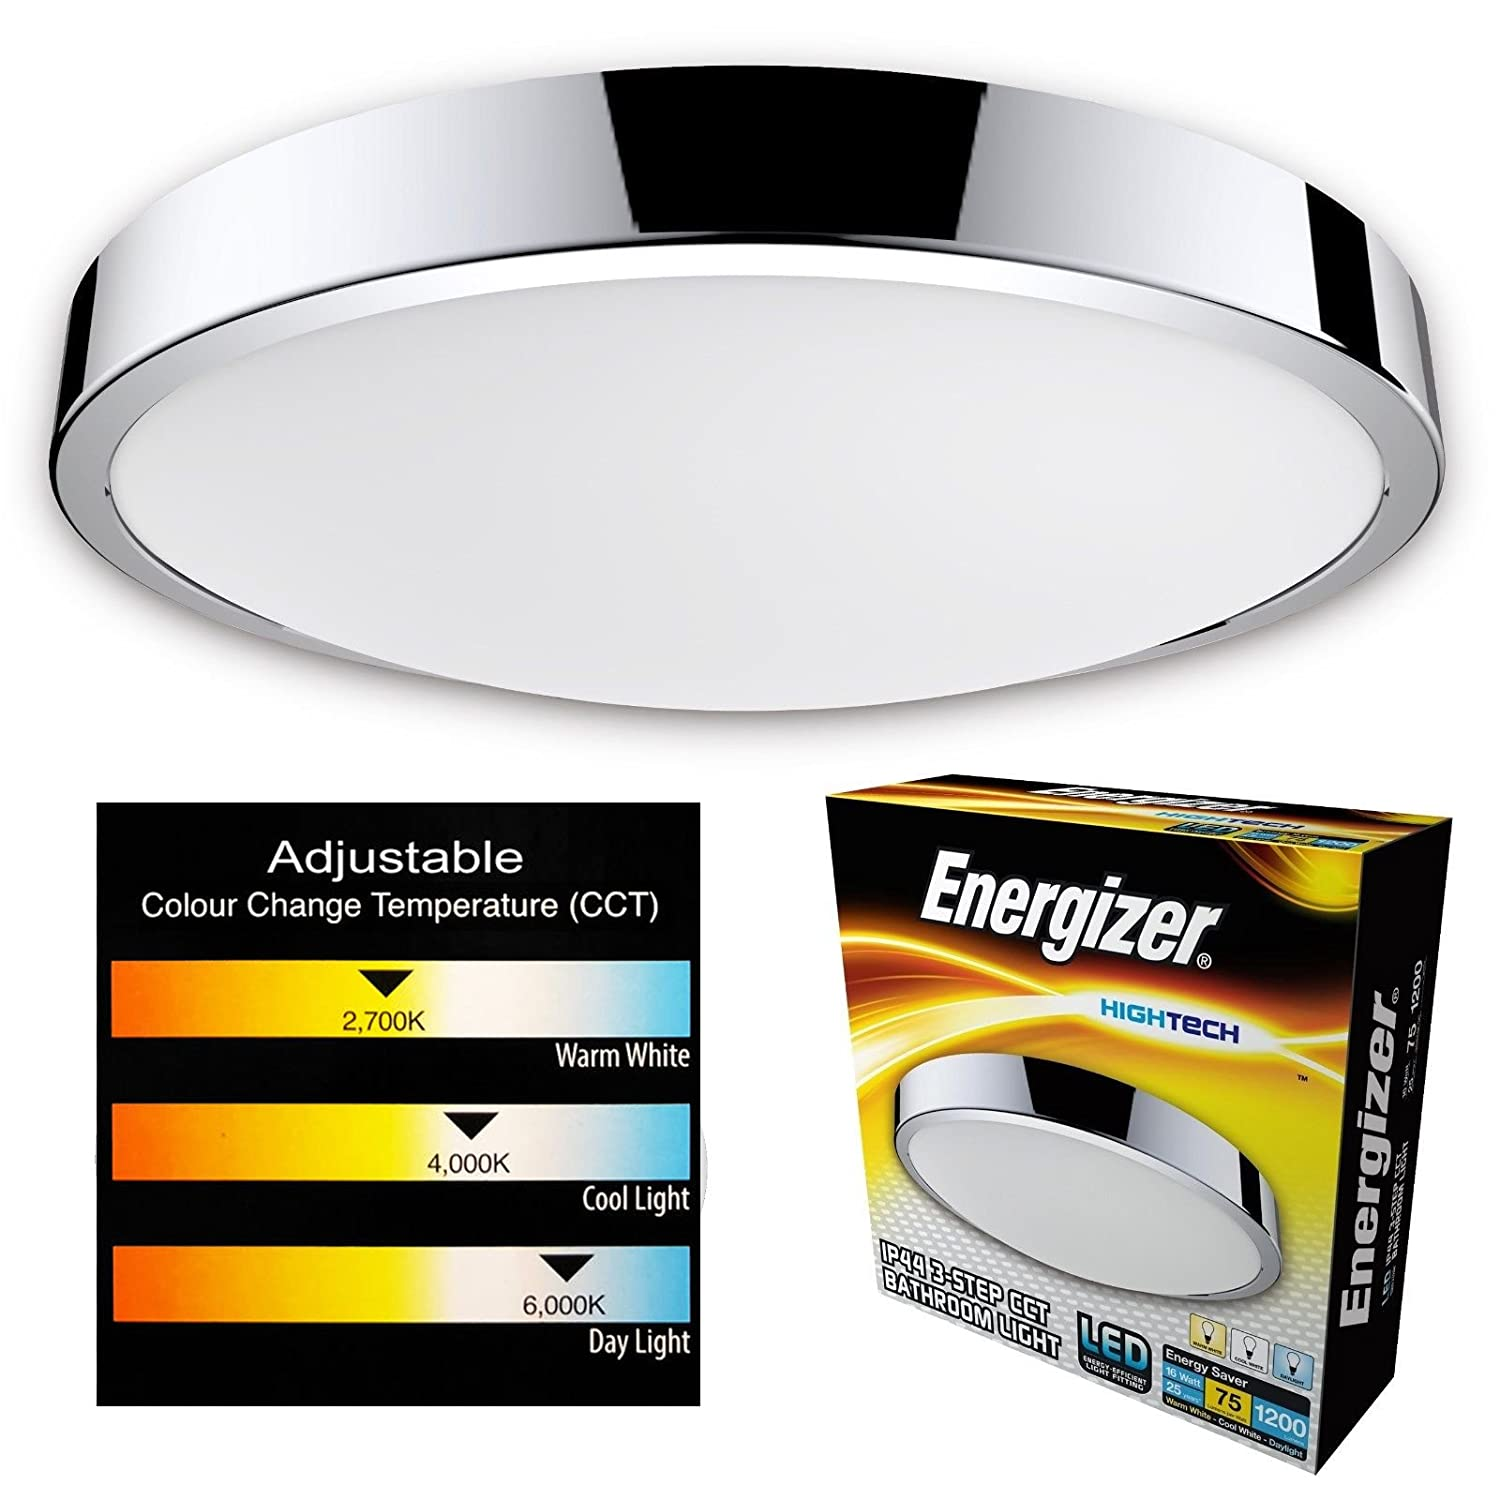 Energizer Led Bathroom Ceiling Light Cct Waterproof Ip44 Colour Wiring A Fitting Temperature Changing Switch From